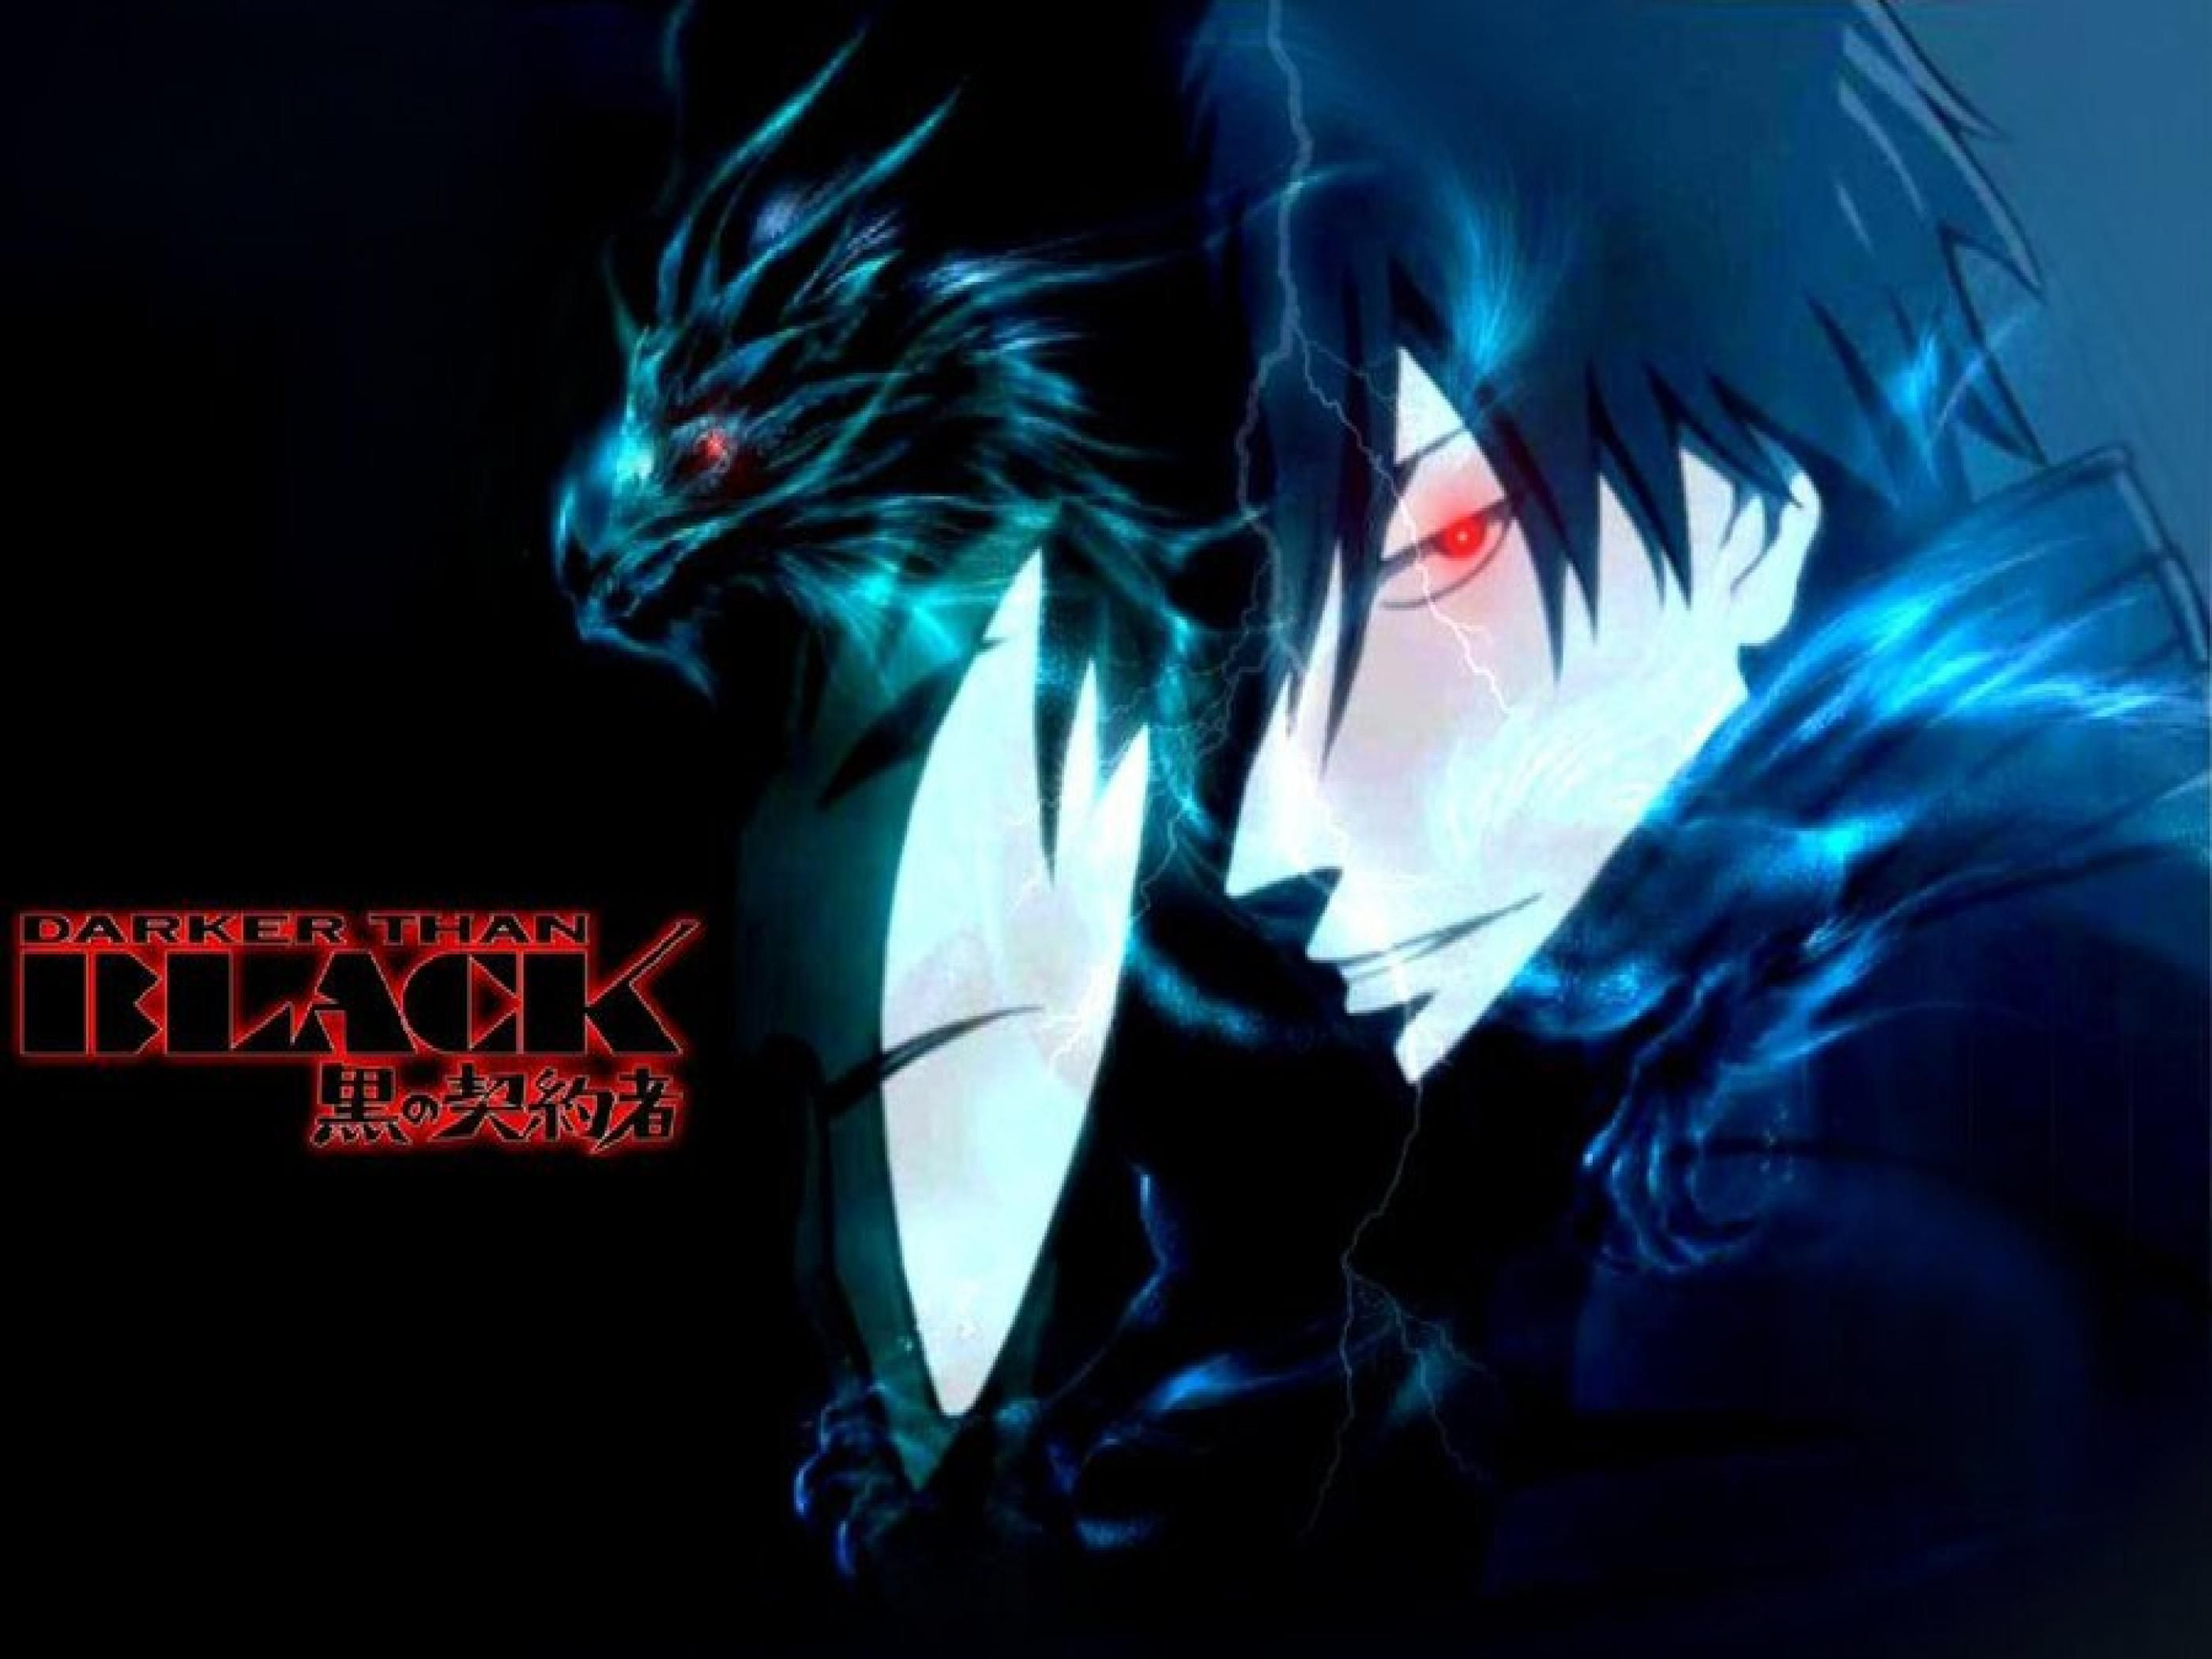 Darker Than Black Wallpapers Top Free Darker Than Black